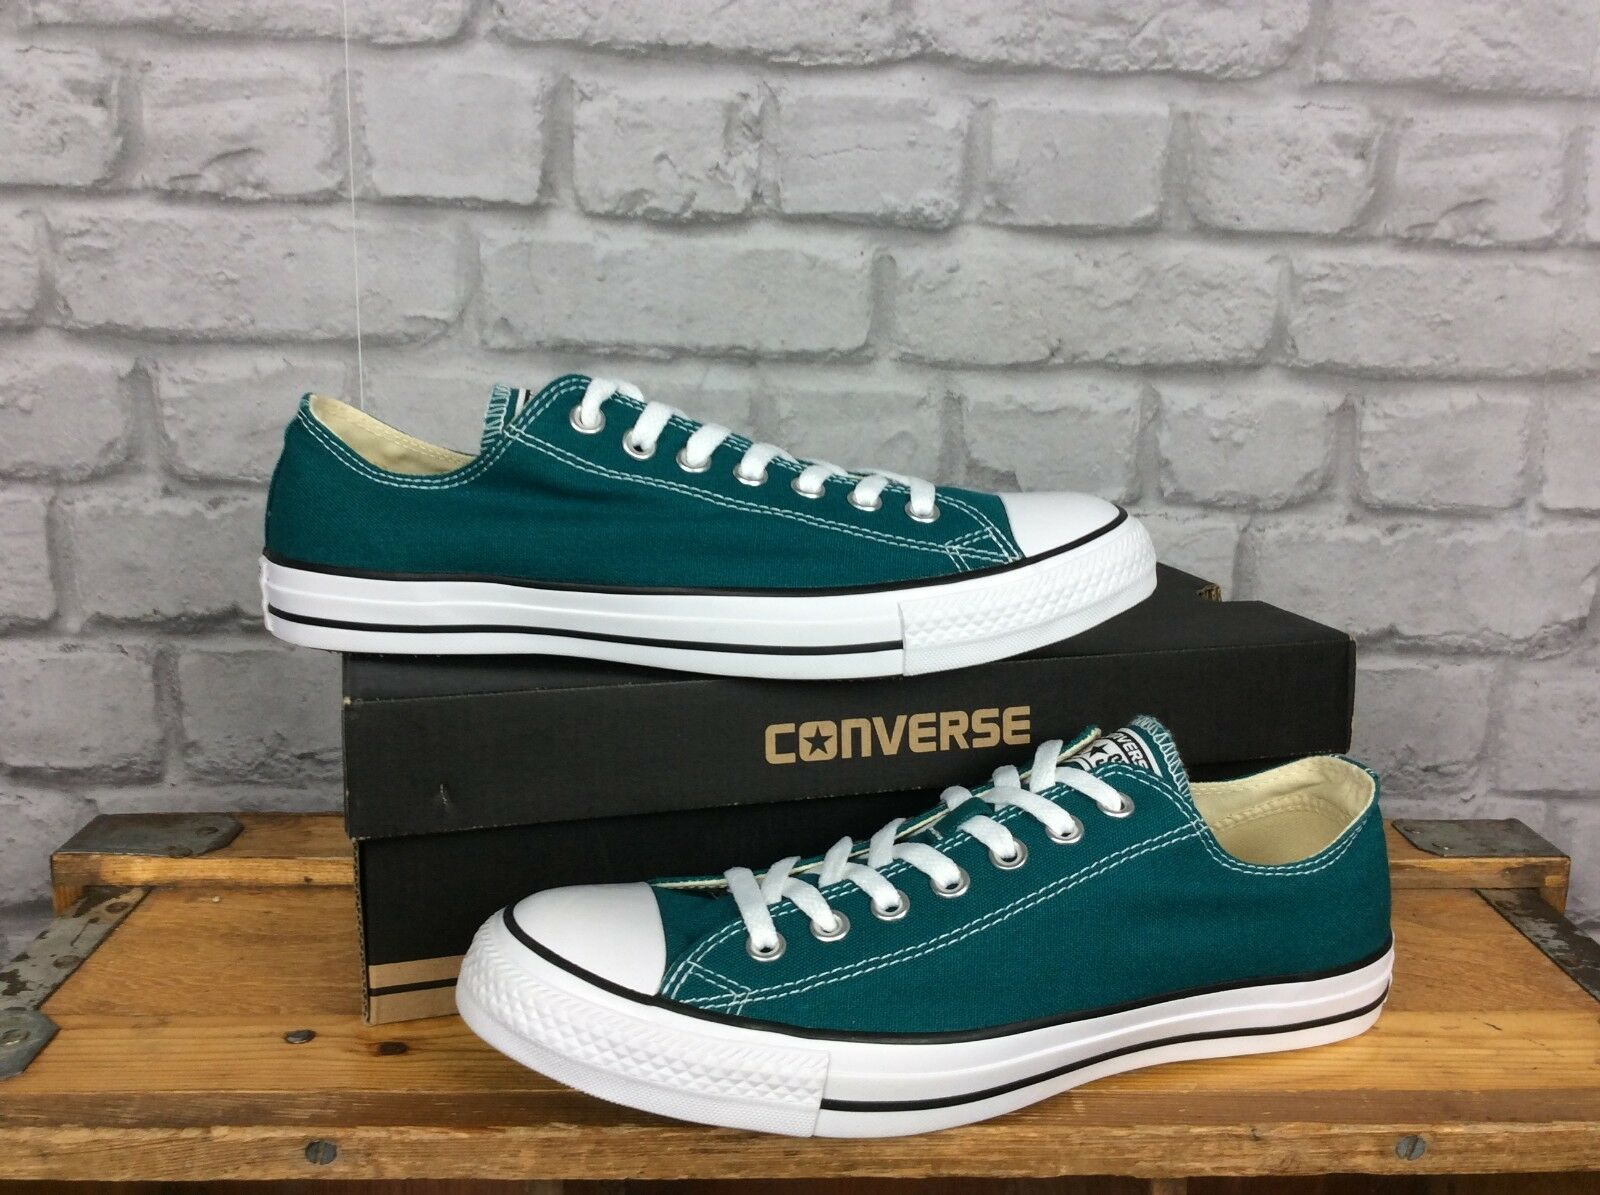 a91d7c56c1a8e CONVERSE MENS UK 9 42.5 GREEN CHUCK TAYLOR ALL STAR OX TRAINERS EU CANVAS  nnwgft8477-Men s Athletic Shoes